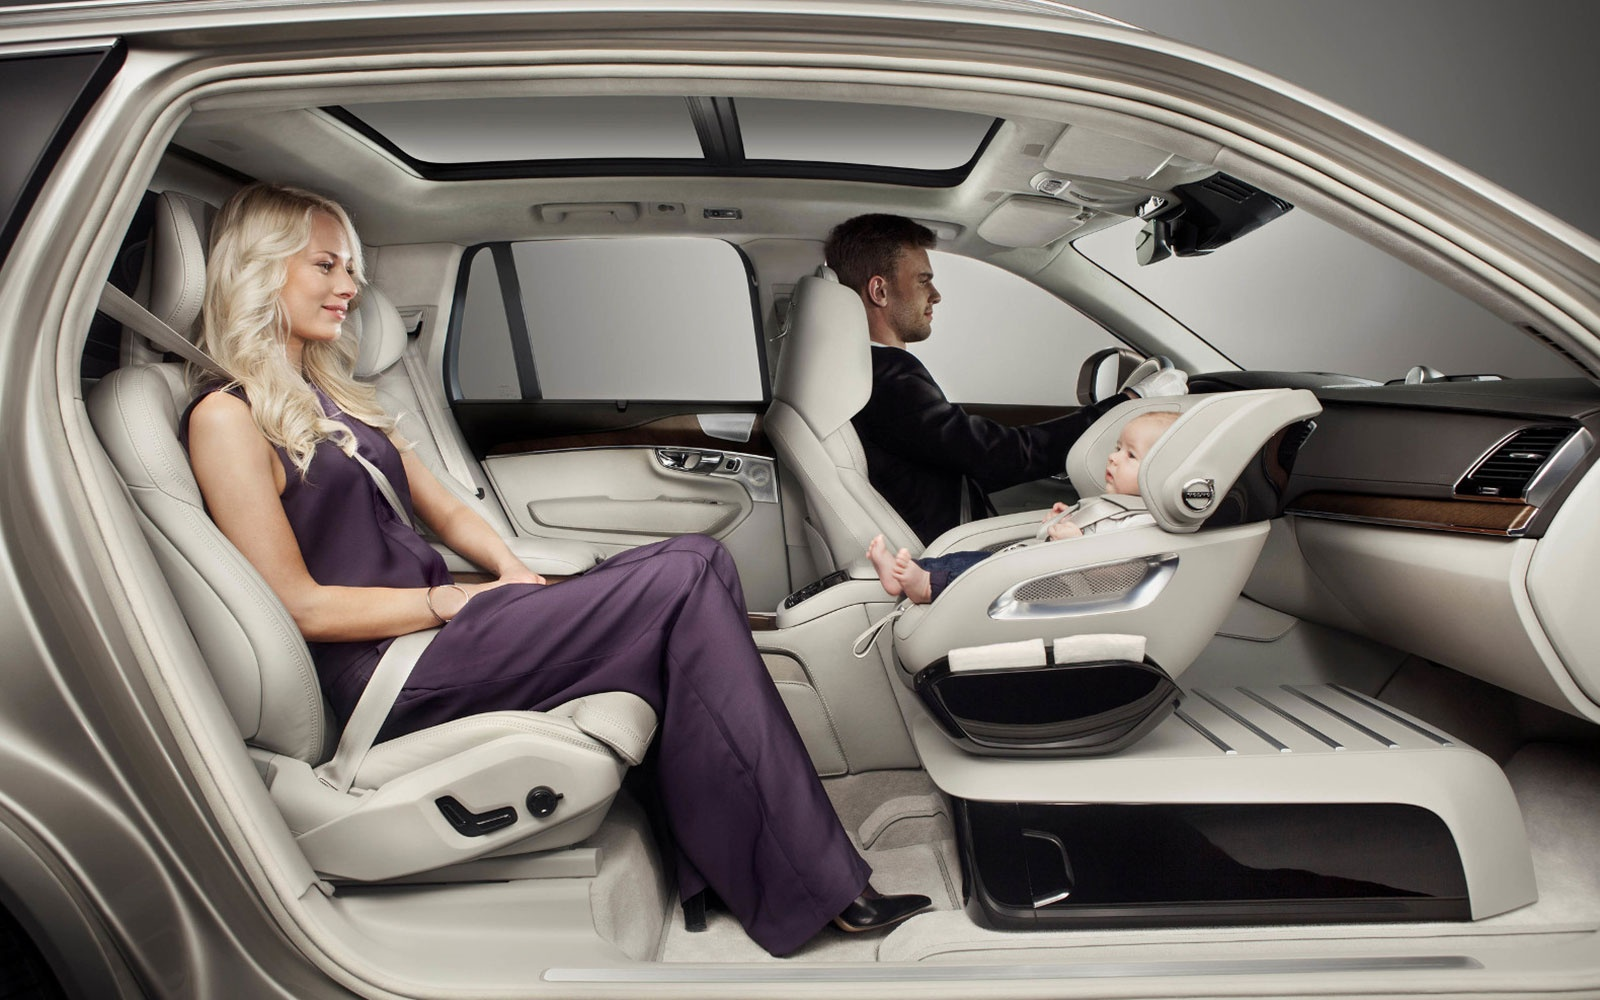 Volvo0715-XC90-Excellence-Child-Seat-Concept.jpg